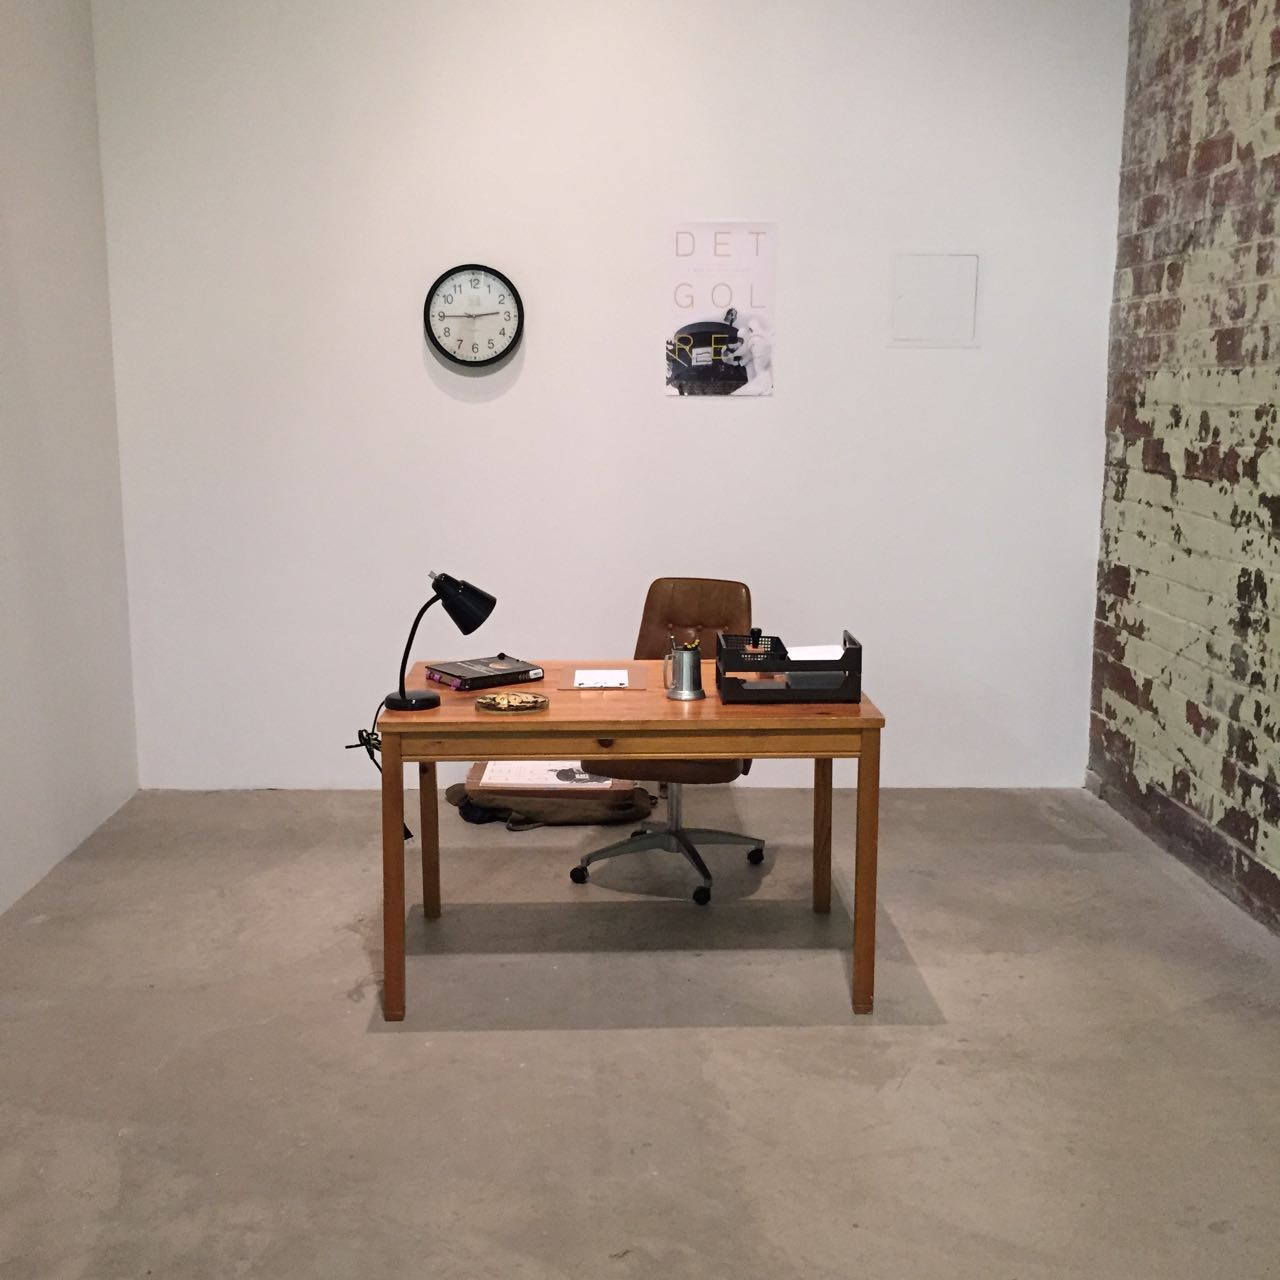 Detroit Gold Record recruitment office at MOCAD